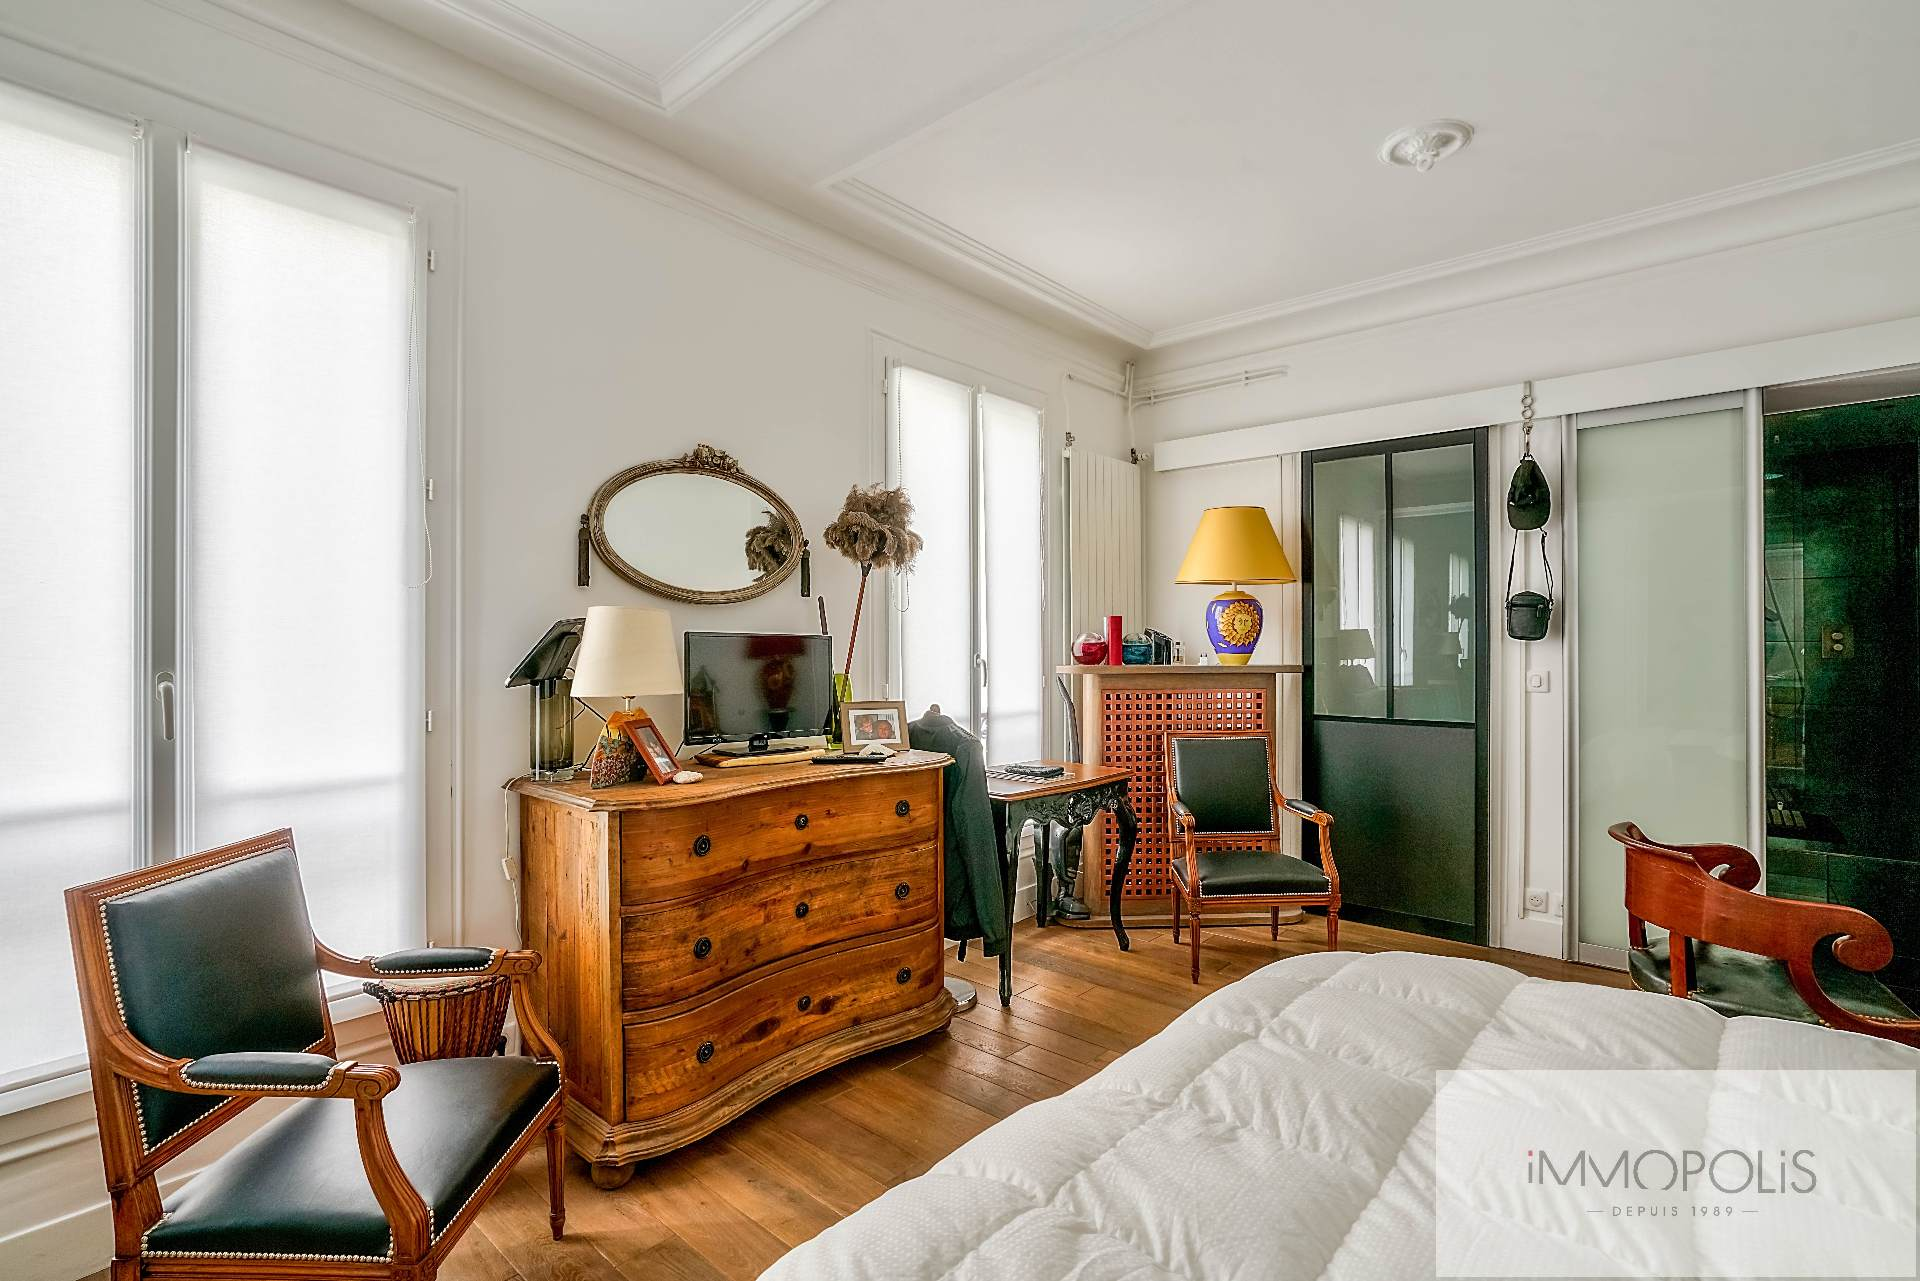 Abbesses, rue Constance: superb 3-room apartment (1 bedroom) on the 3rd floor with elevator: very nice amenities! 4